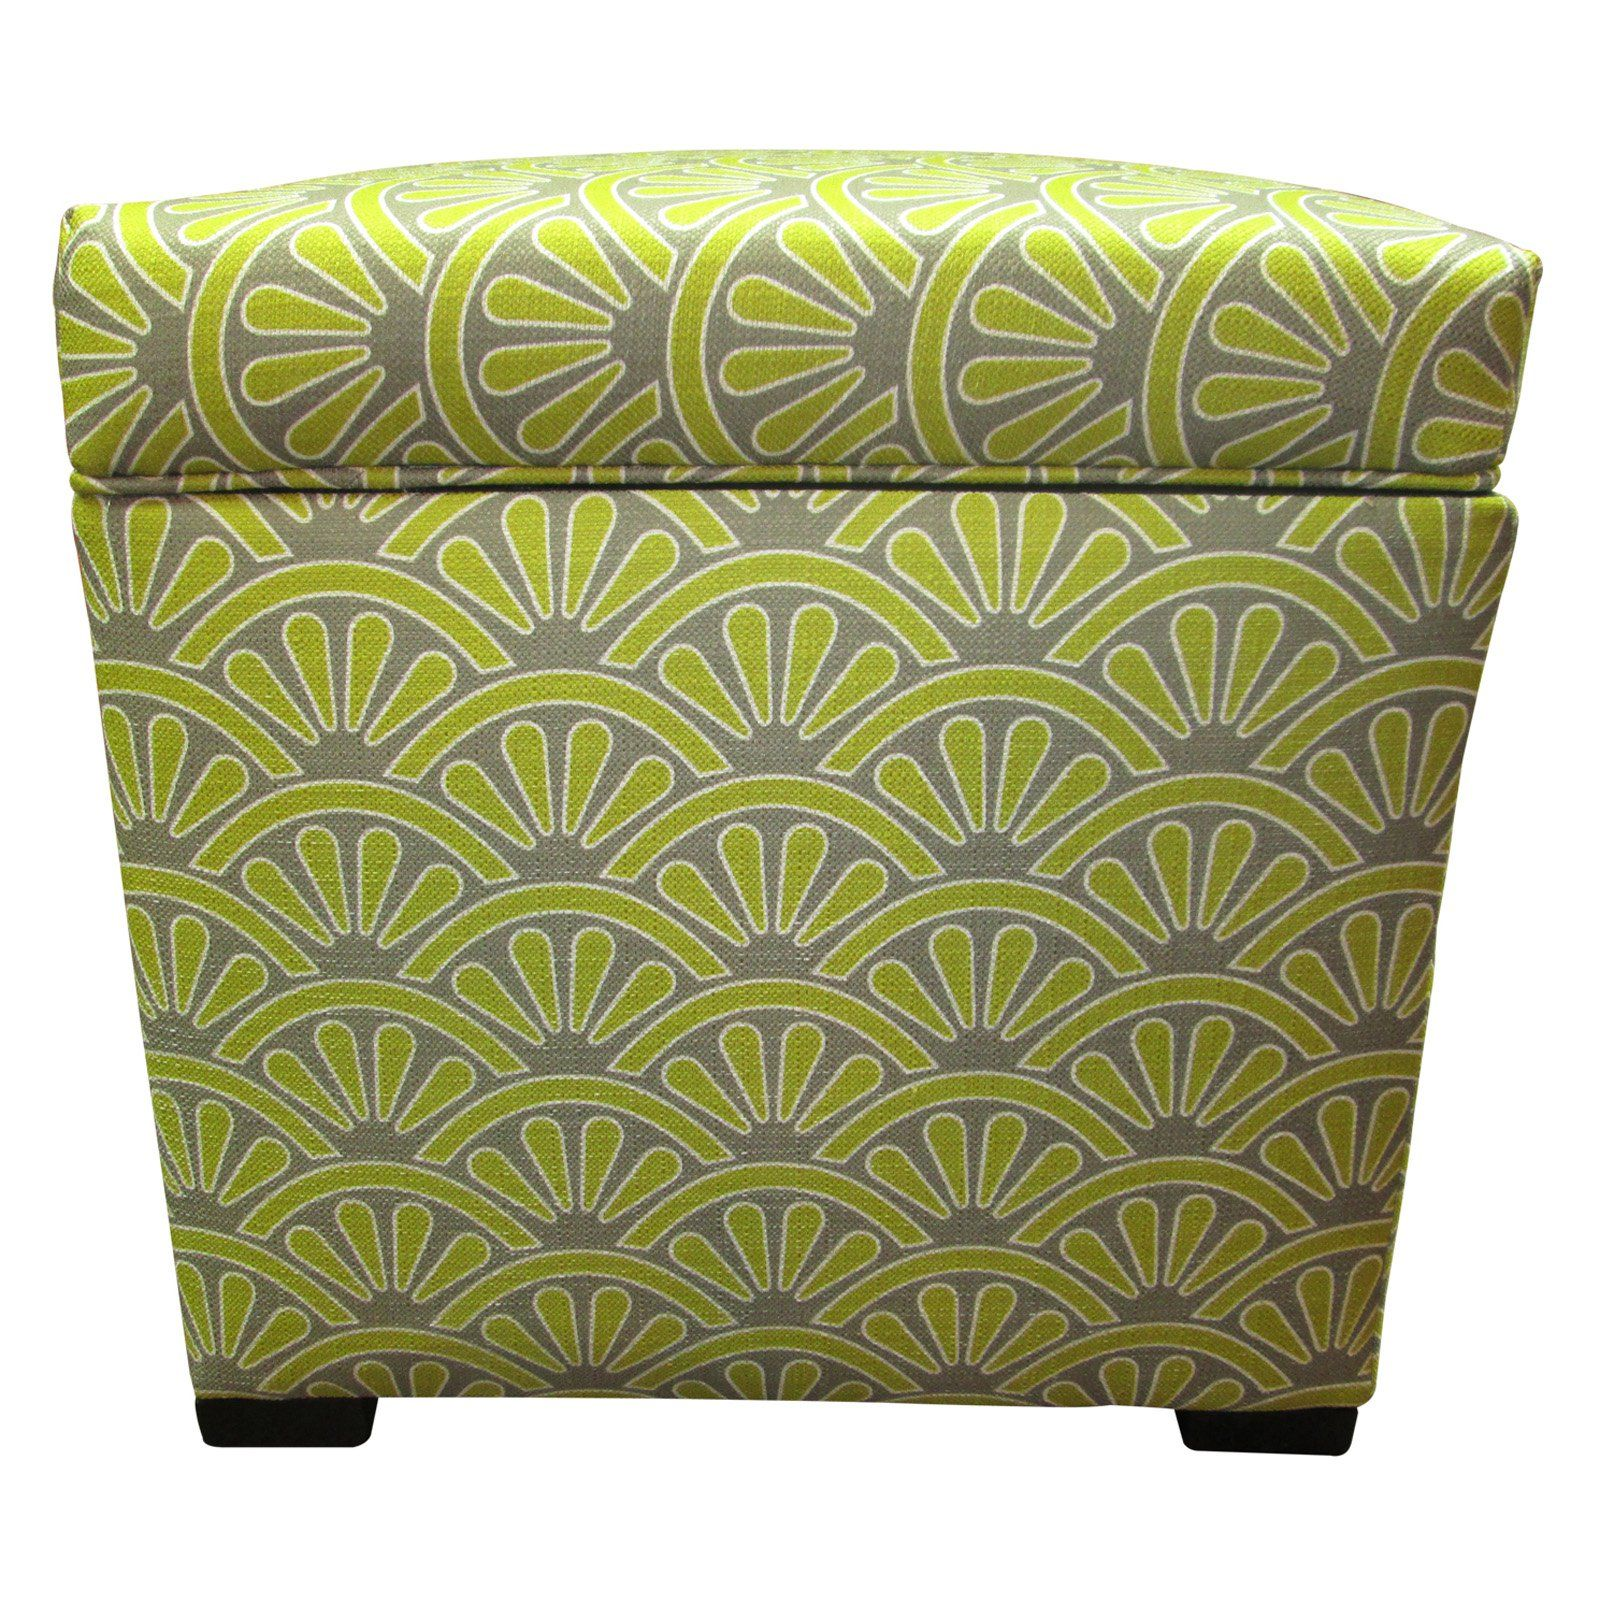 Wondrous Sole Designs Tami Collection Bonjour Series Upholstered Dailytribune Chair Design For Home Dailytribuneorg